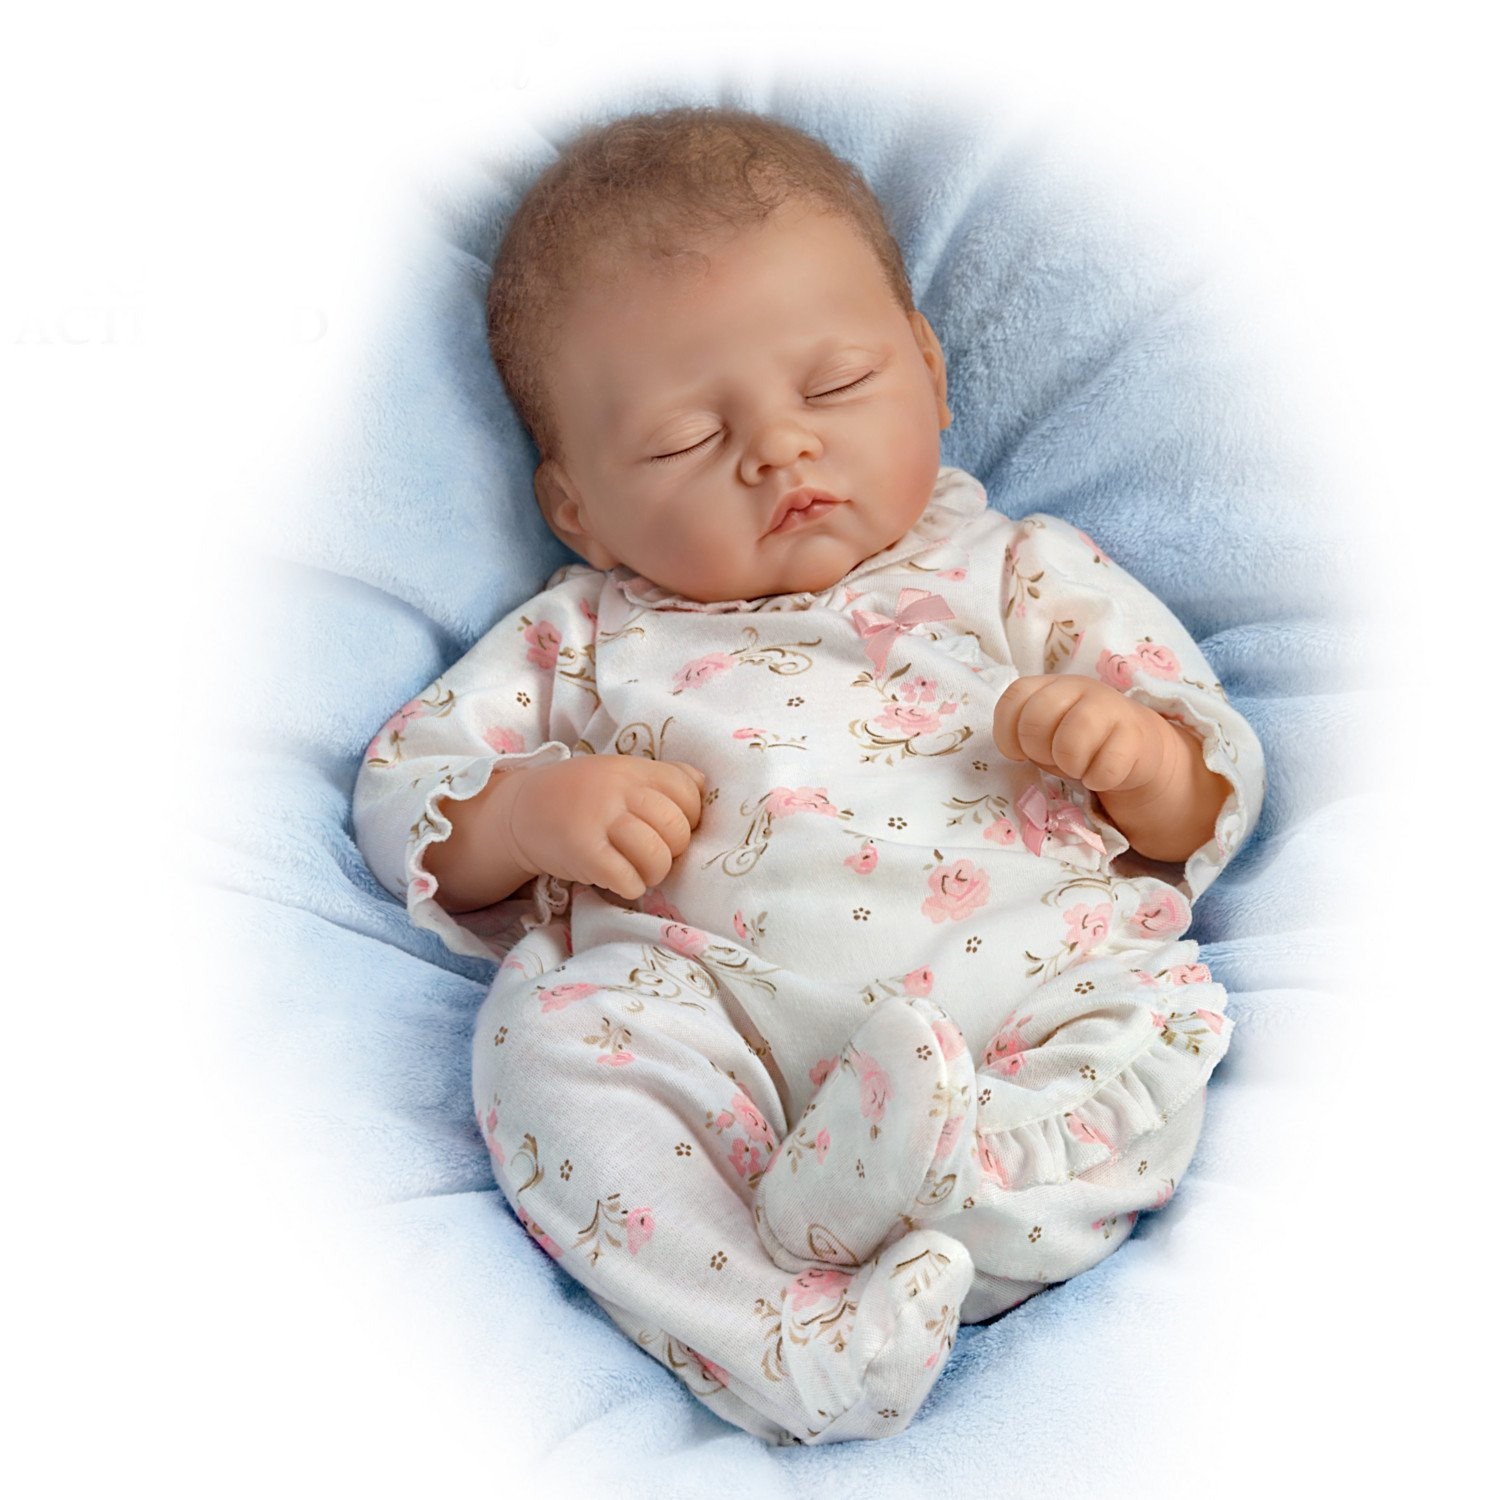 Sophia Breathes, Coos and has a Heartbeat - So Truly Real® Lifelike, Interactive & Realistic Weighted Newborn Baby Doll 19-inches  by The Ashton-Drake Galleries